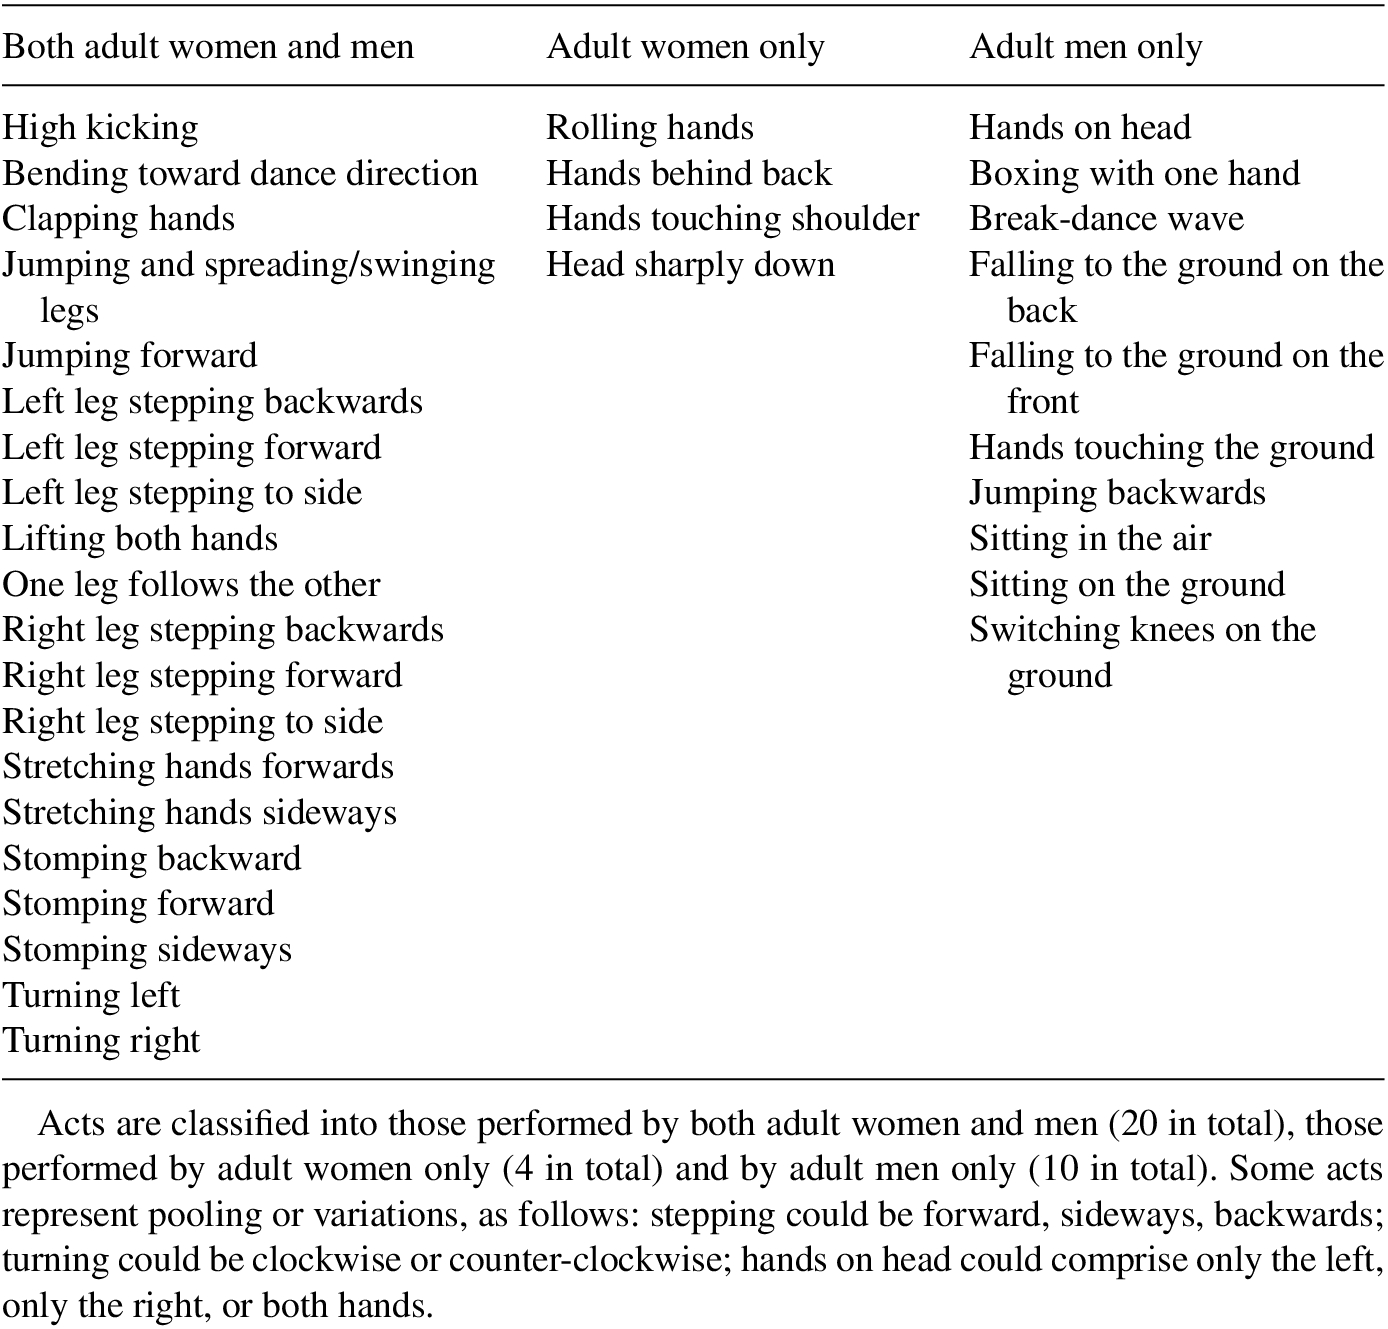 Structural differences among individuals, genders and